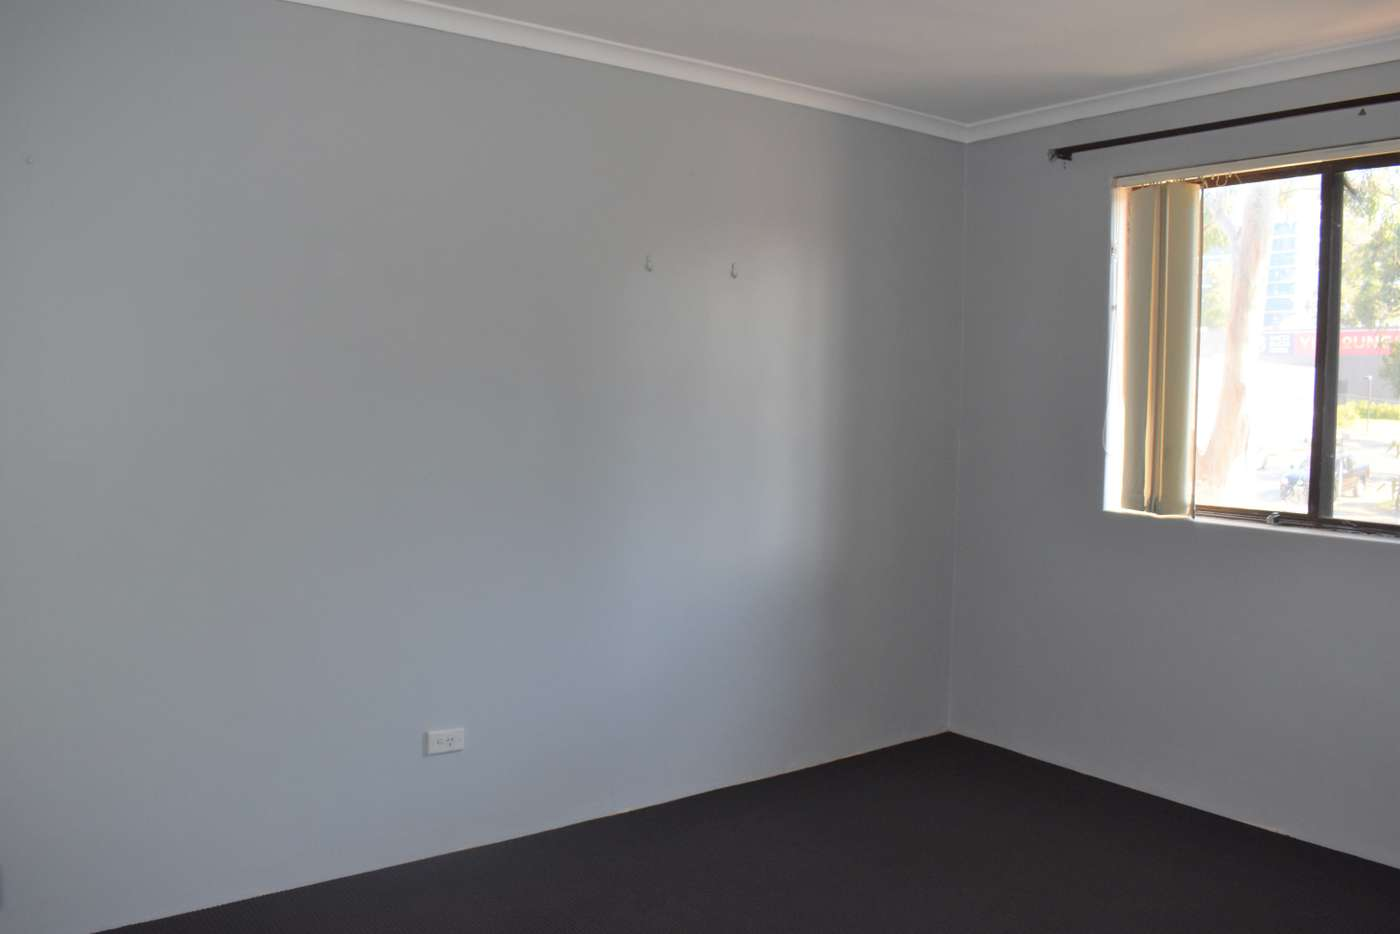 Sixth view of Homely house listing, 1/16 Luxford Road, Mount Druitt NSW 2770